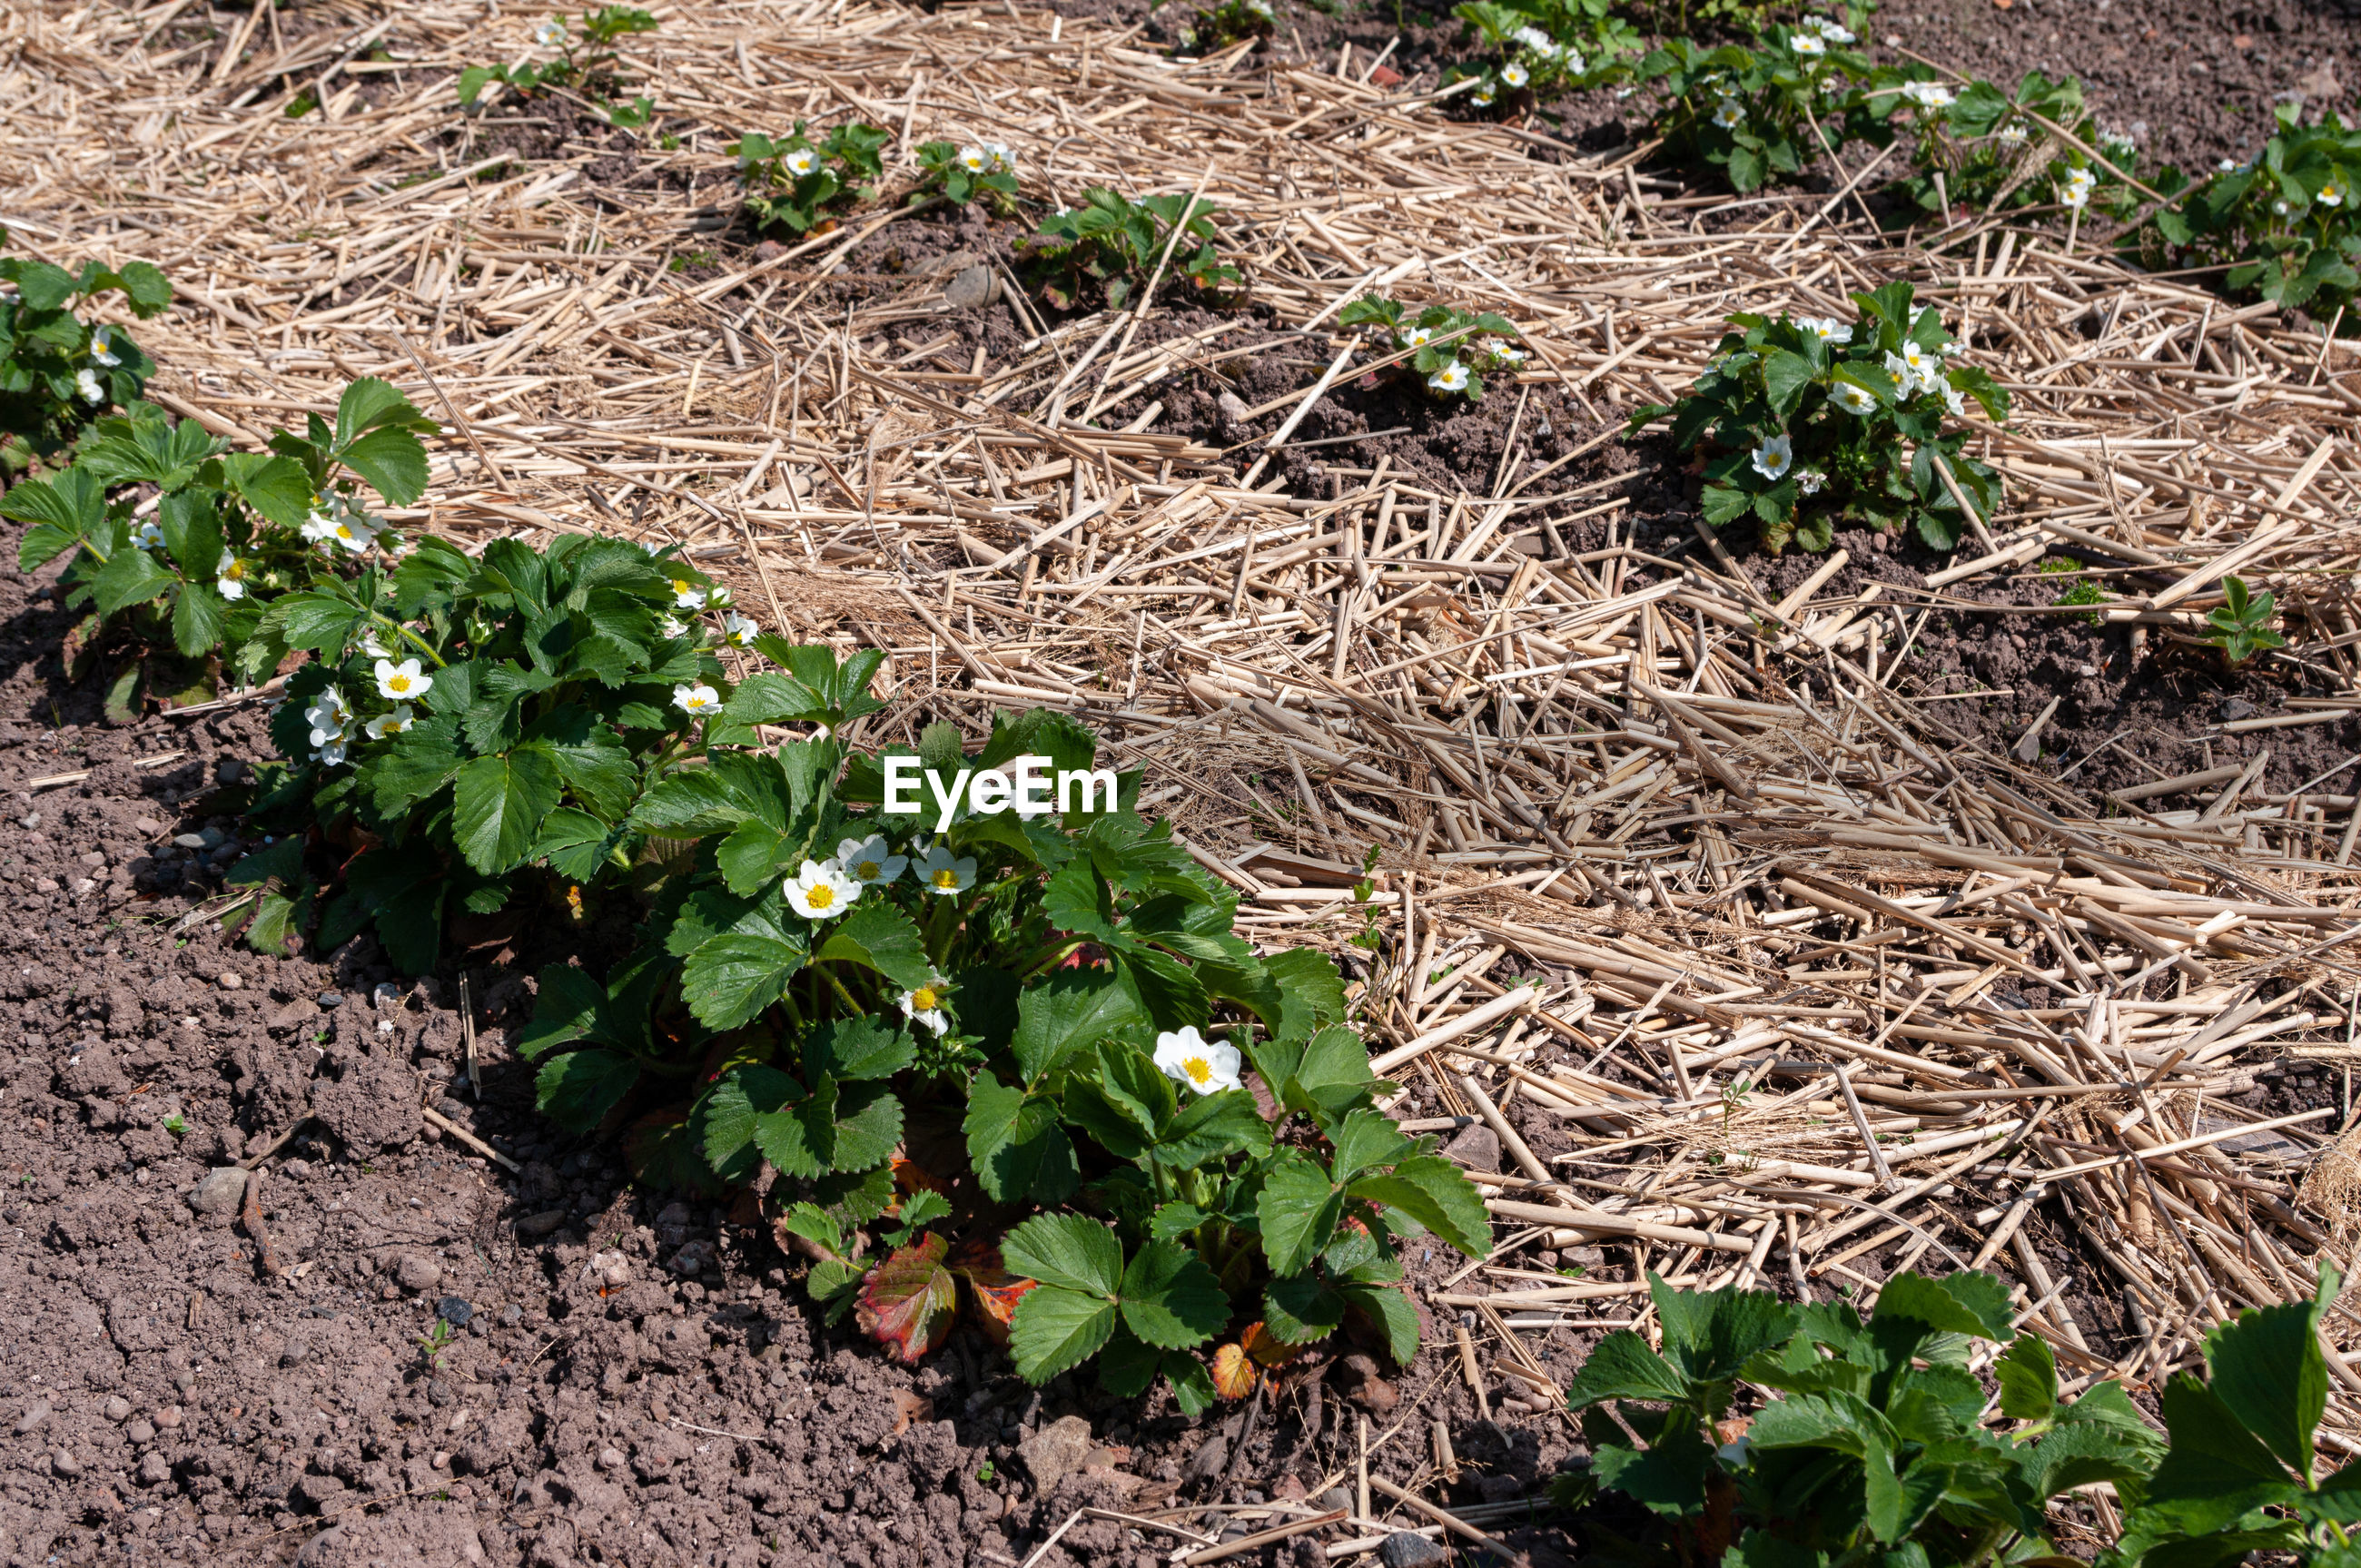 Strawberries growing in lines in garden bed with straw mulch